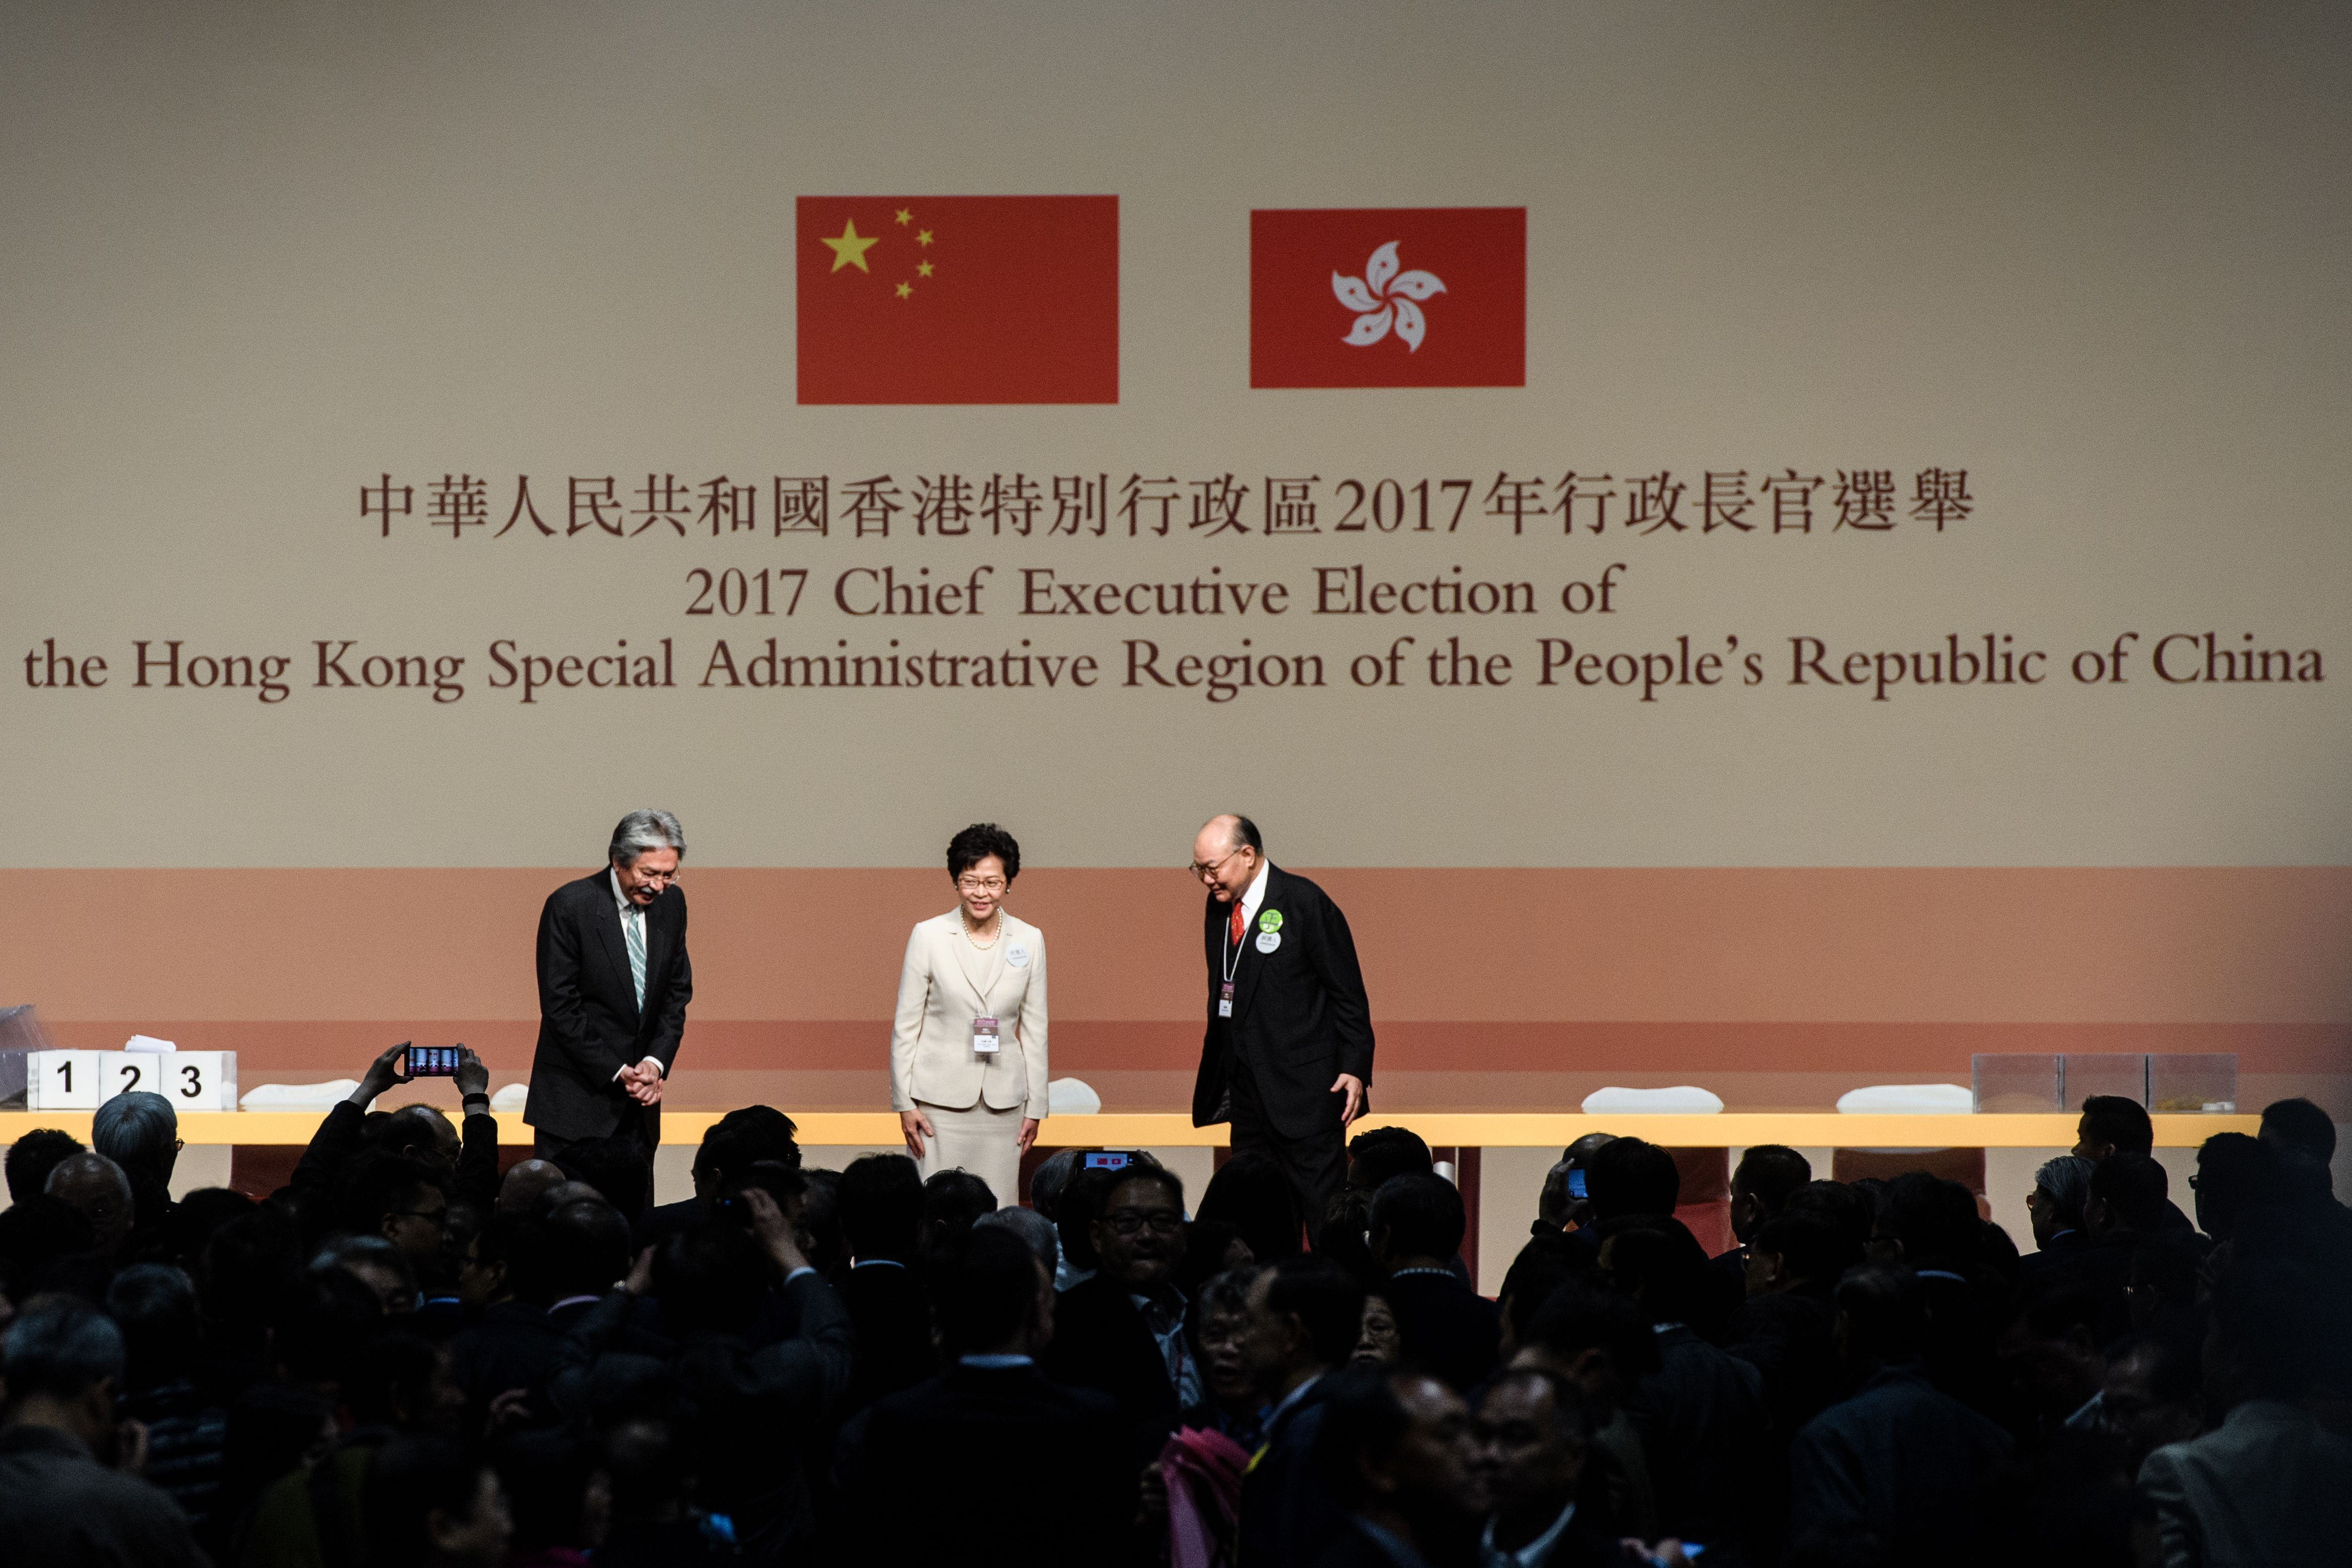 Hong Kong's new Chief Executive Carrie Lam, center, stands on stage with her defeated opponents John Tsang, left, and Woo Kwok-hing, right, in Hong Kong on March 26, 2017